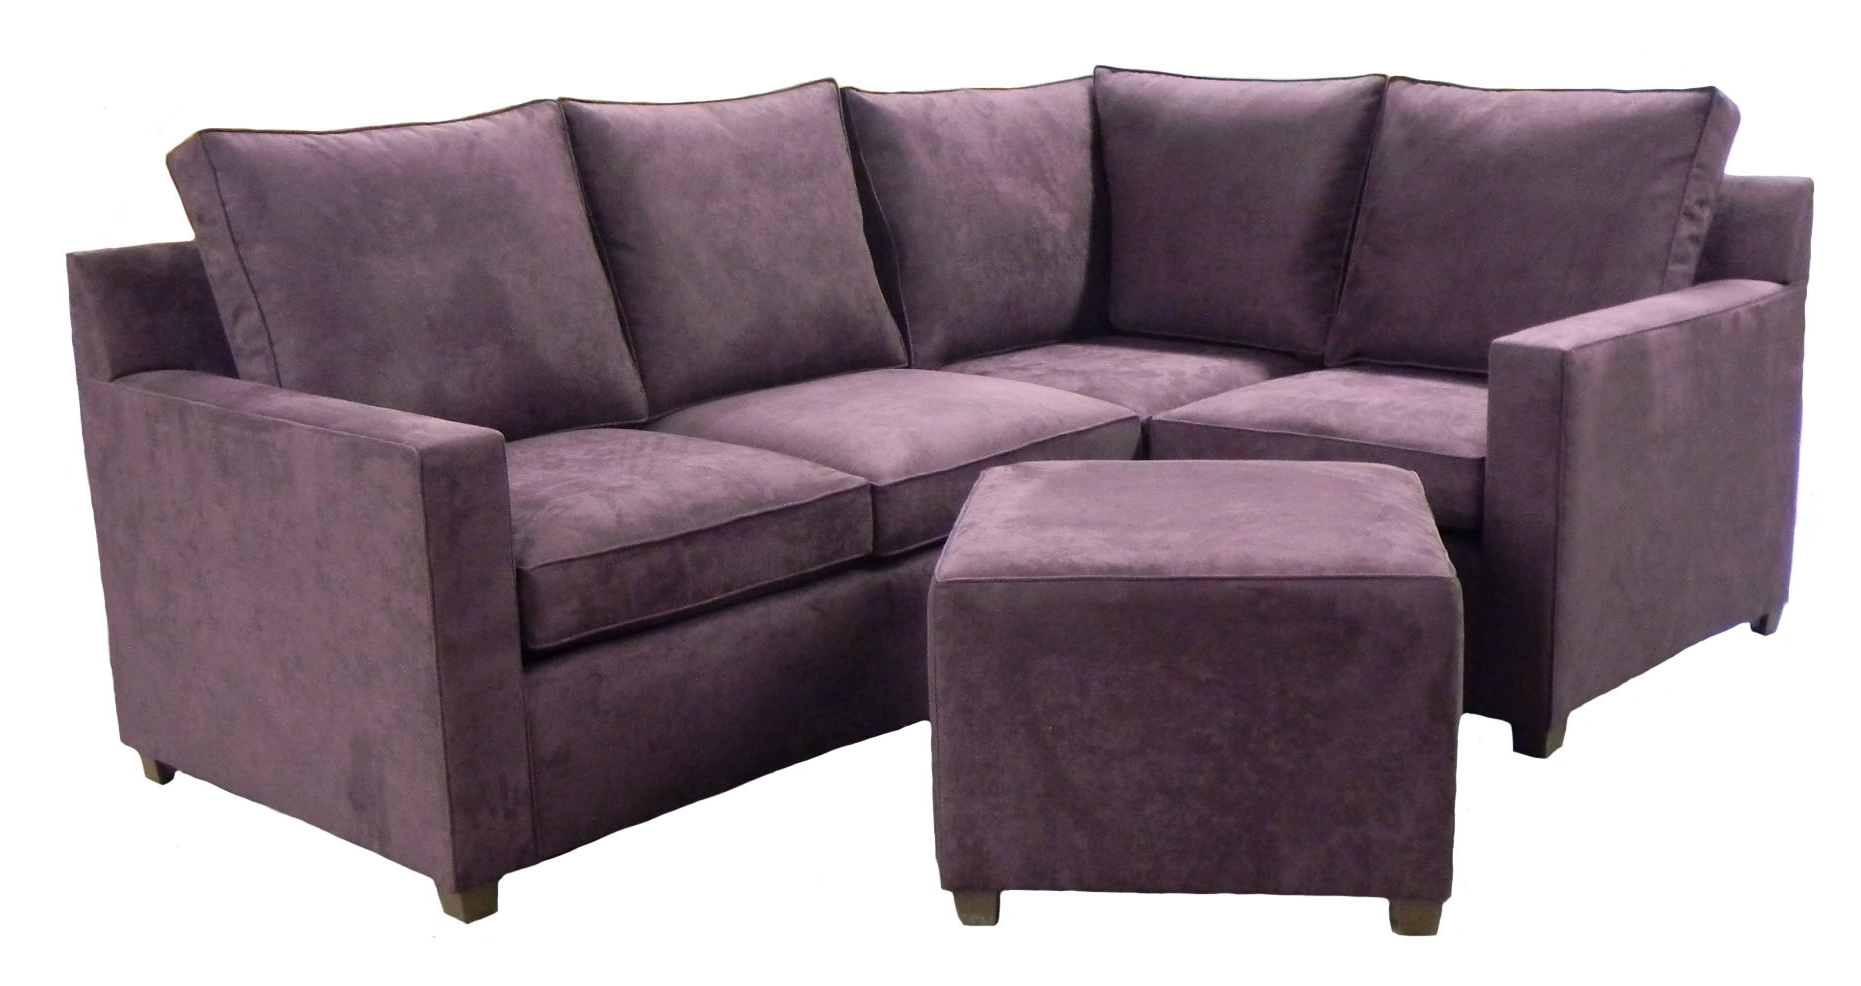 Sectional Sofas By Size With Regard To Latest Small Size Sectional Sofas – Hotelsbacau (View 20 of 20)